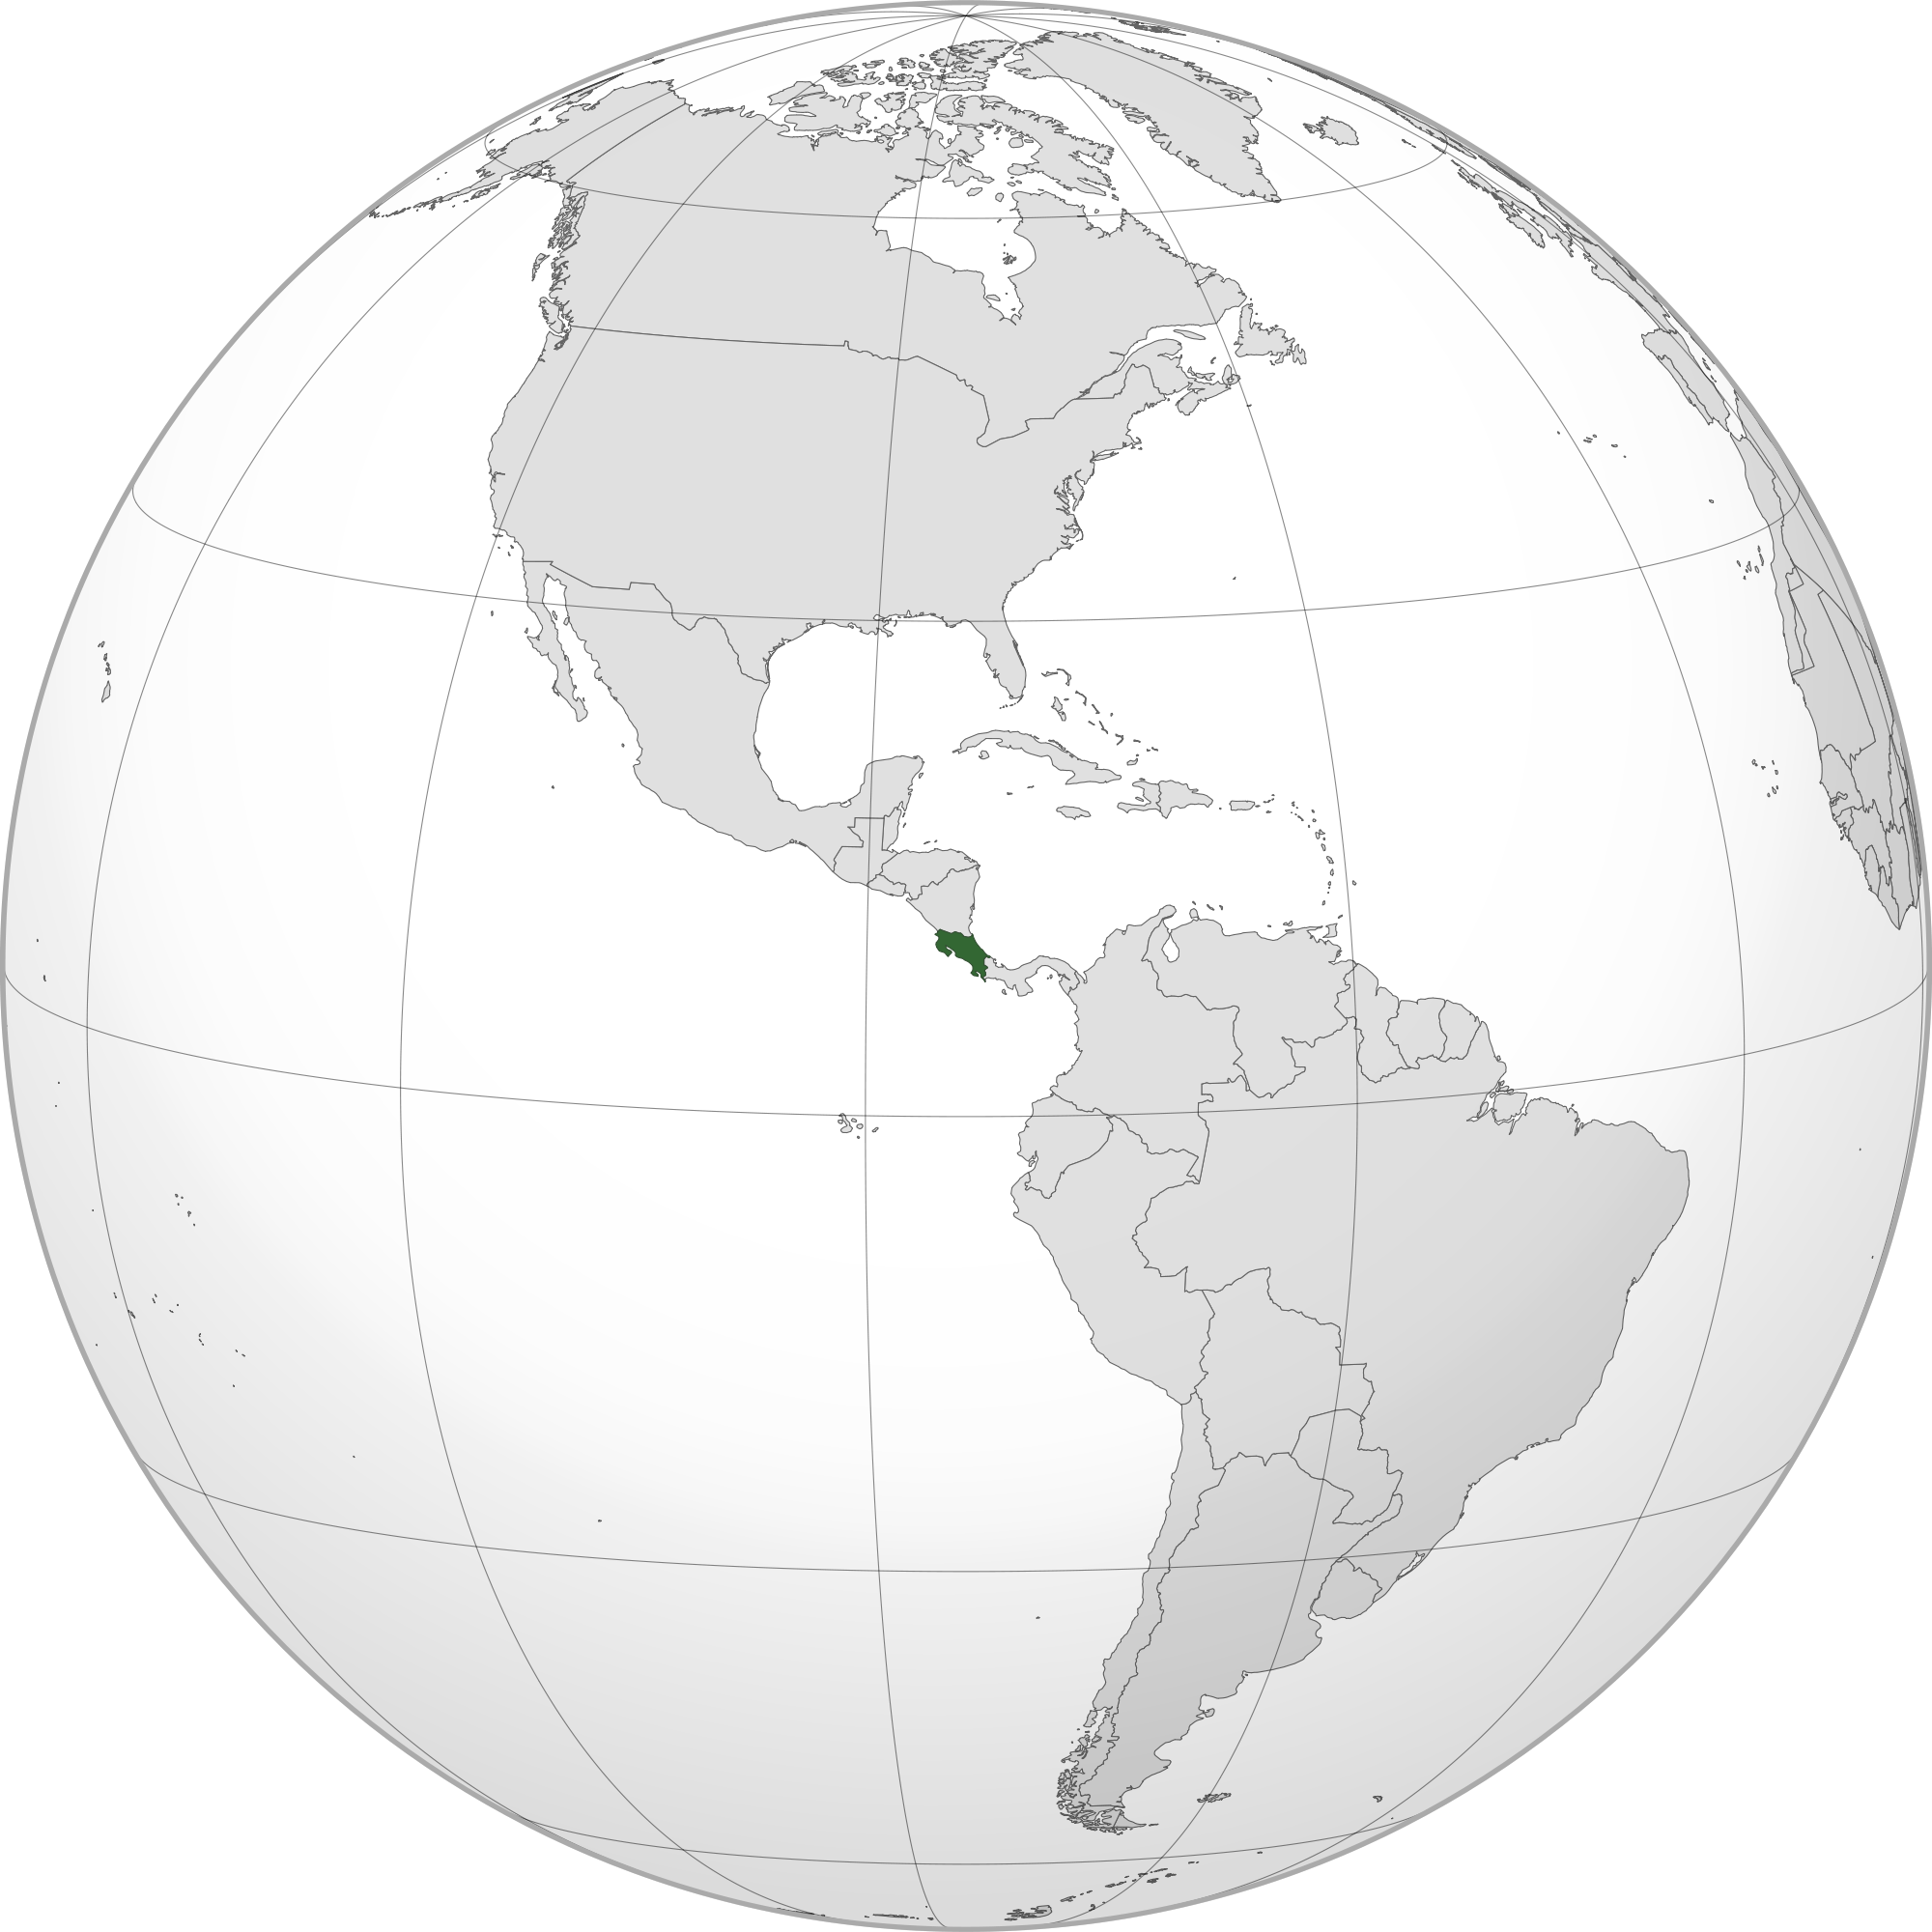 Location of the Costa Rica in the World Map